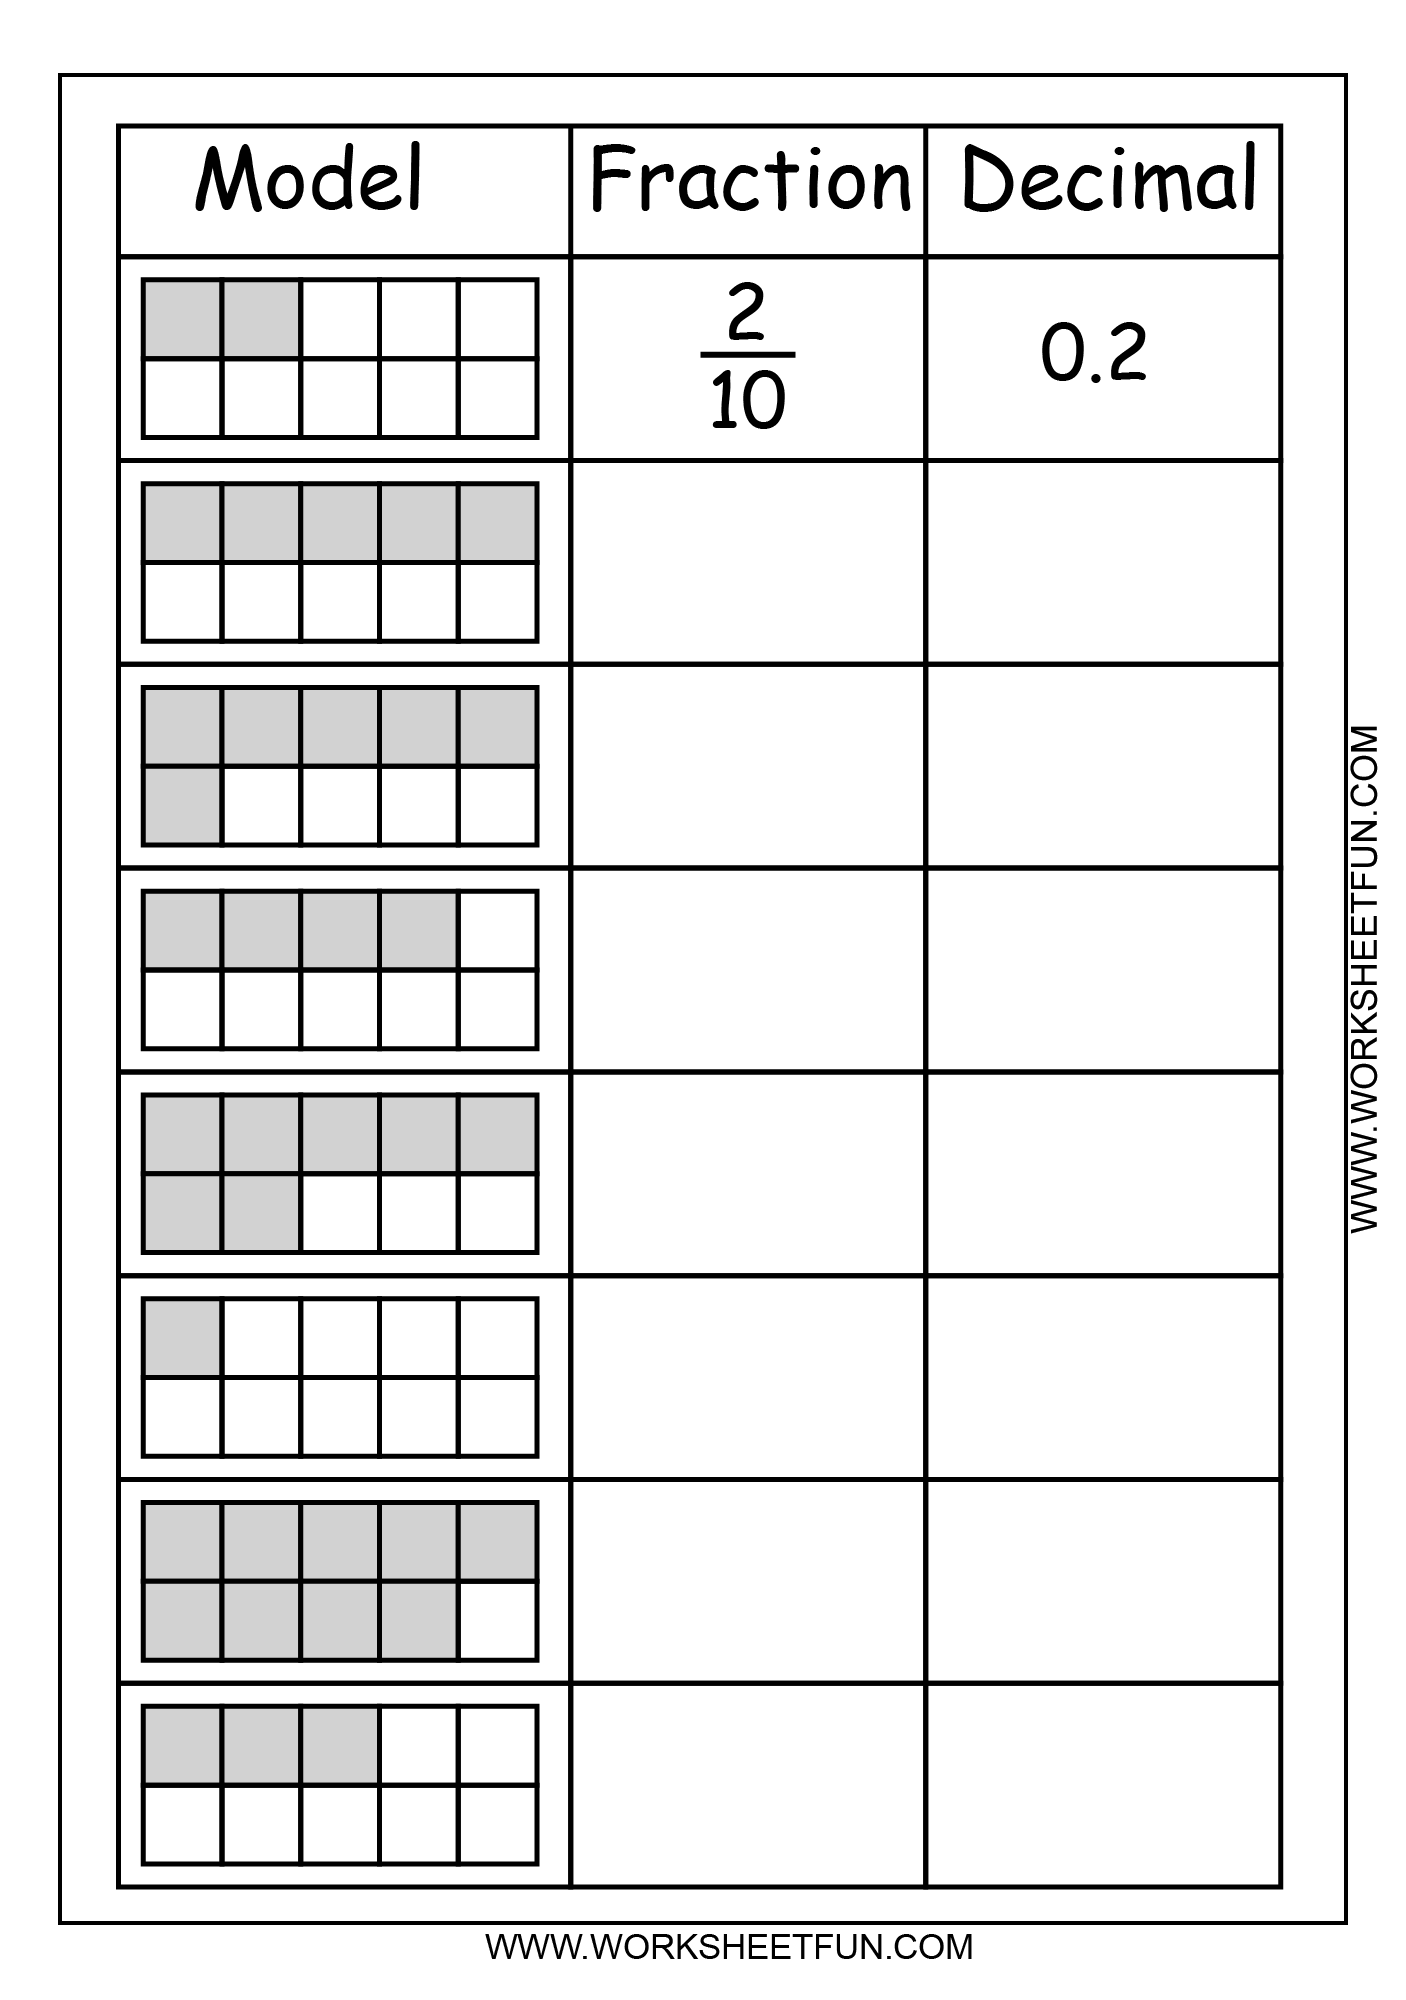 Model fraction decimal Printable Worksheets – Fraction Models Worksheet